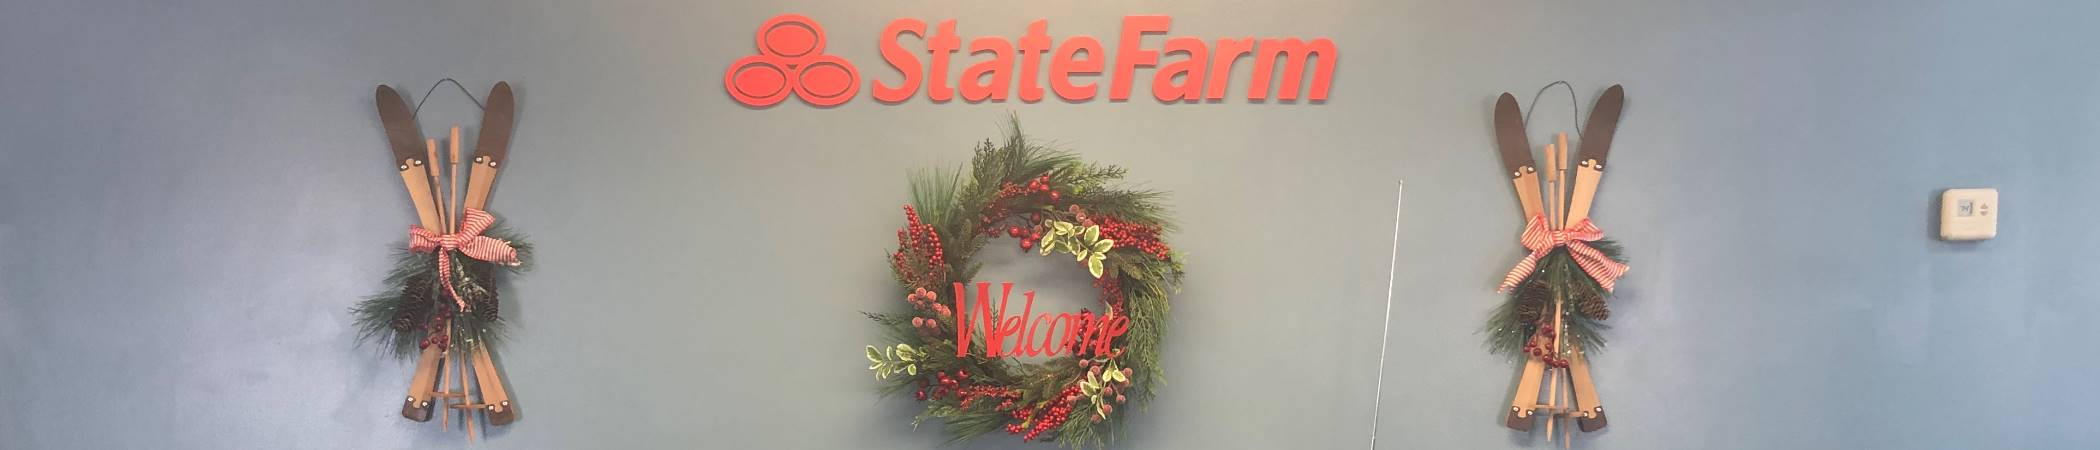 Karla Smothers State Farm Insurance in Watervliet, MI | Home, Auto Insurance & more